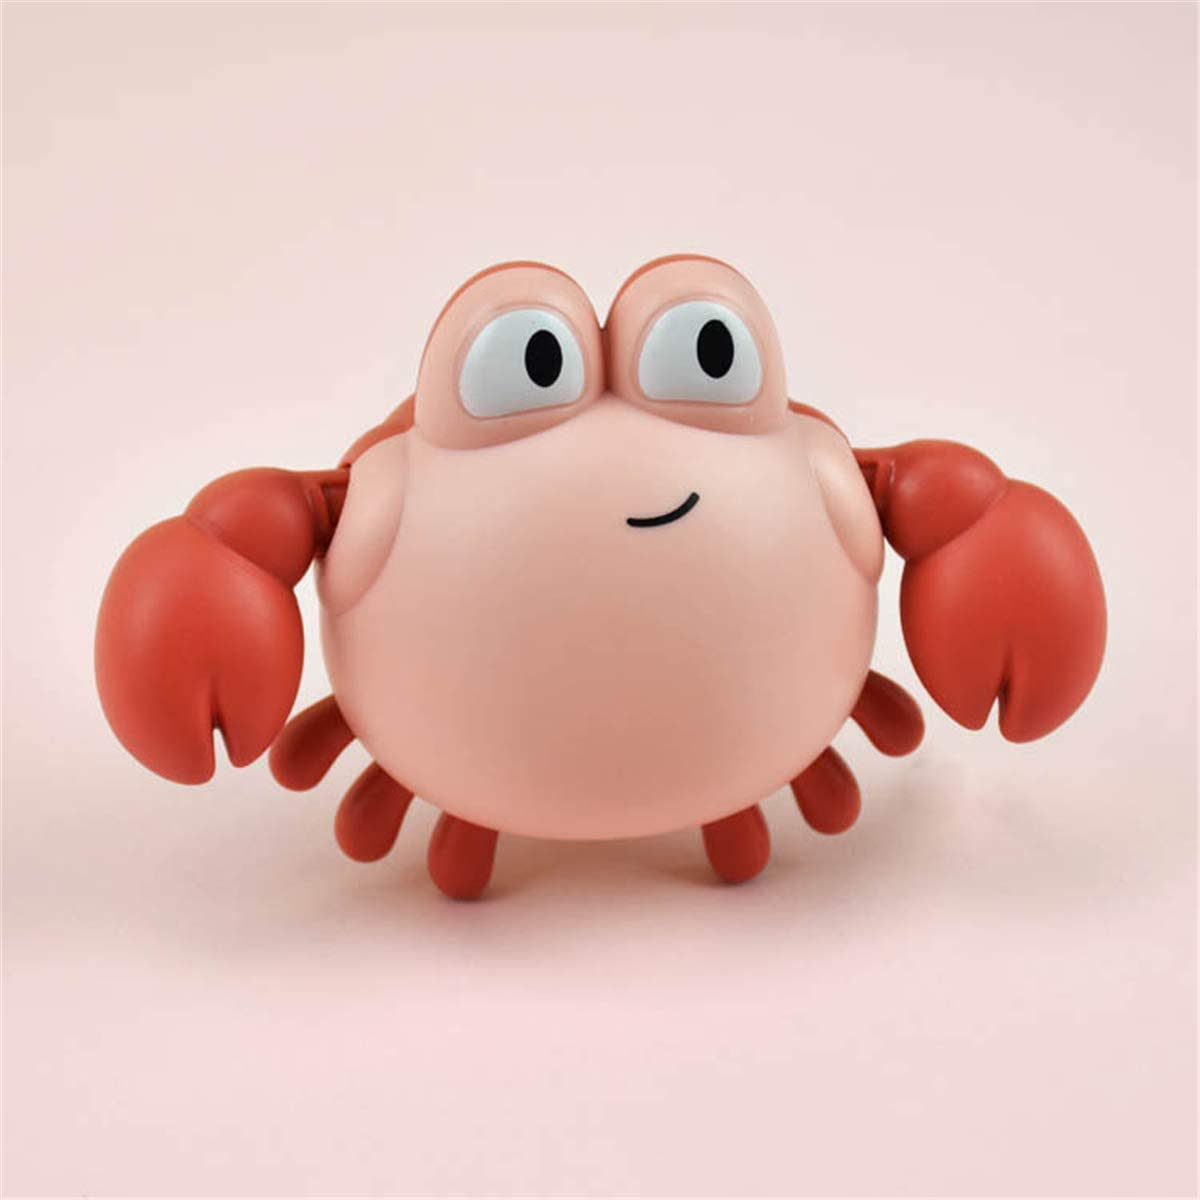 7haofang Wind Up Crab Bath Toy Swimming Crab for Baby Toddler Bath Shower